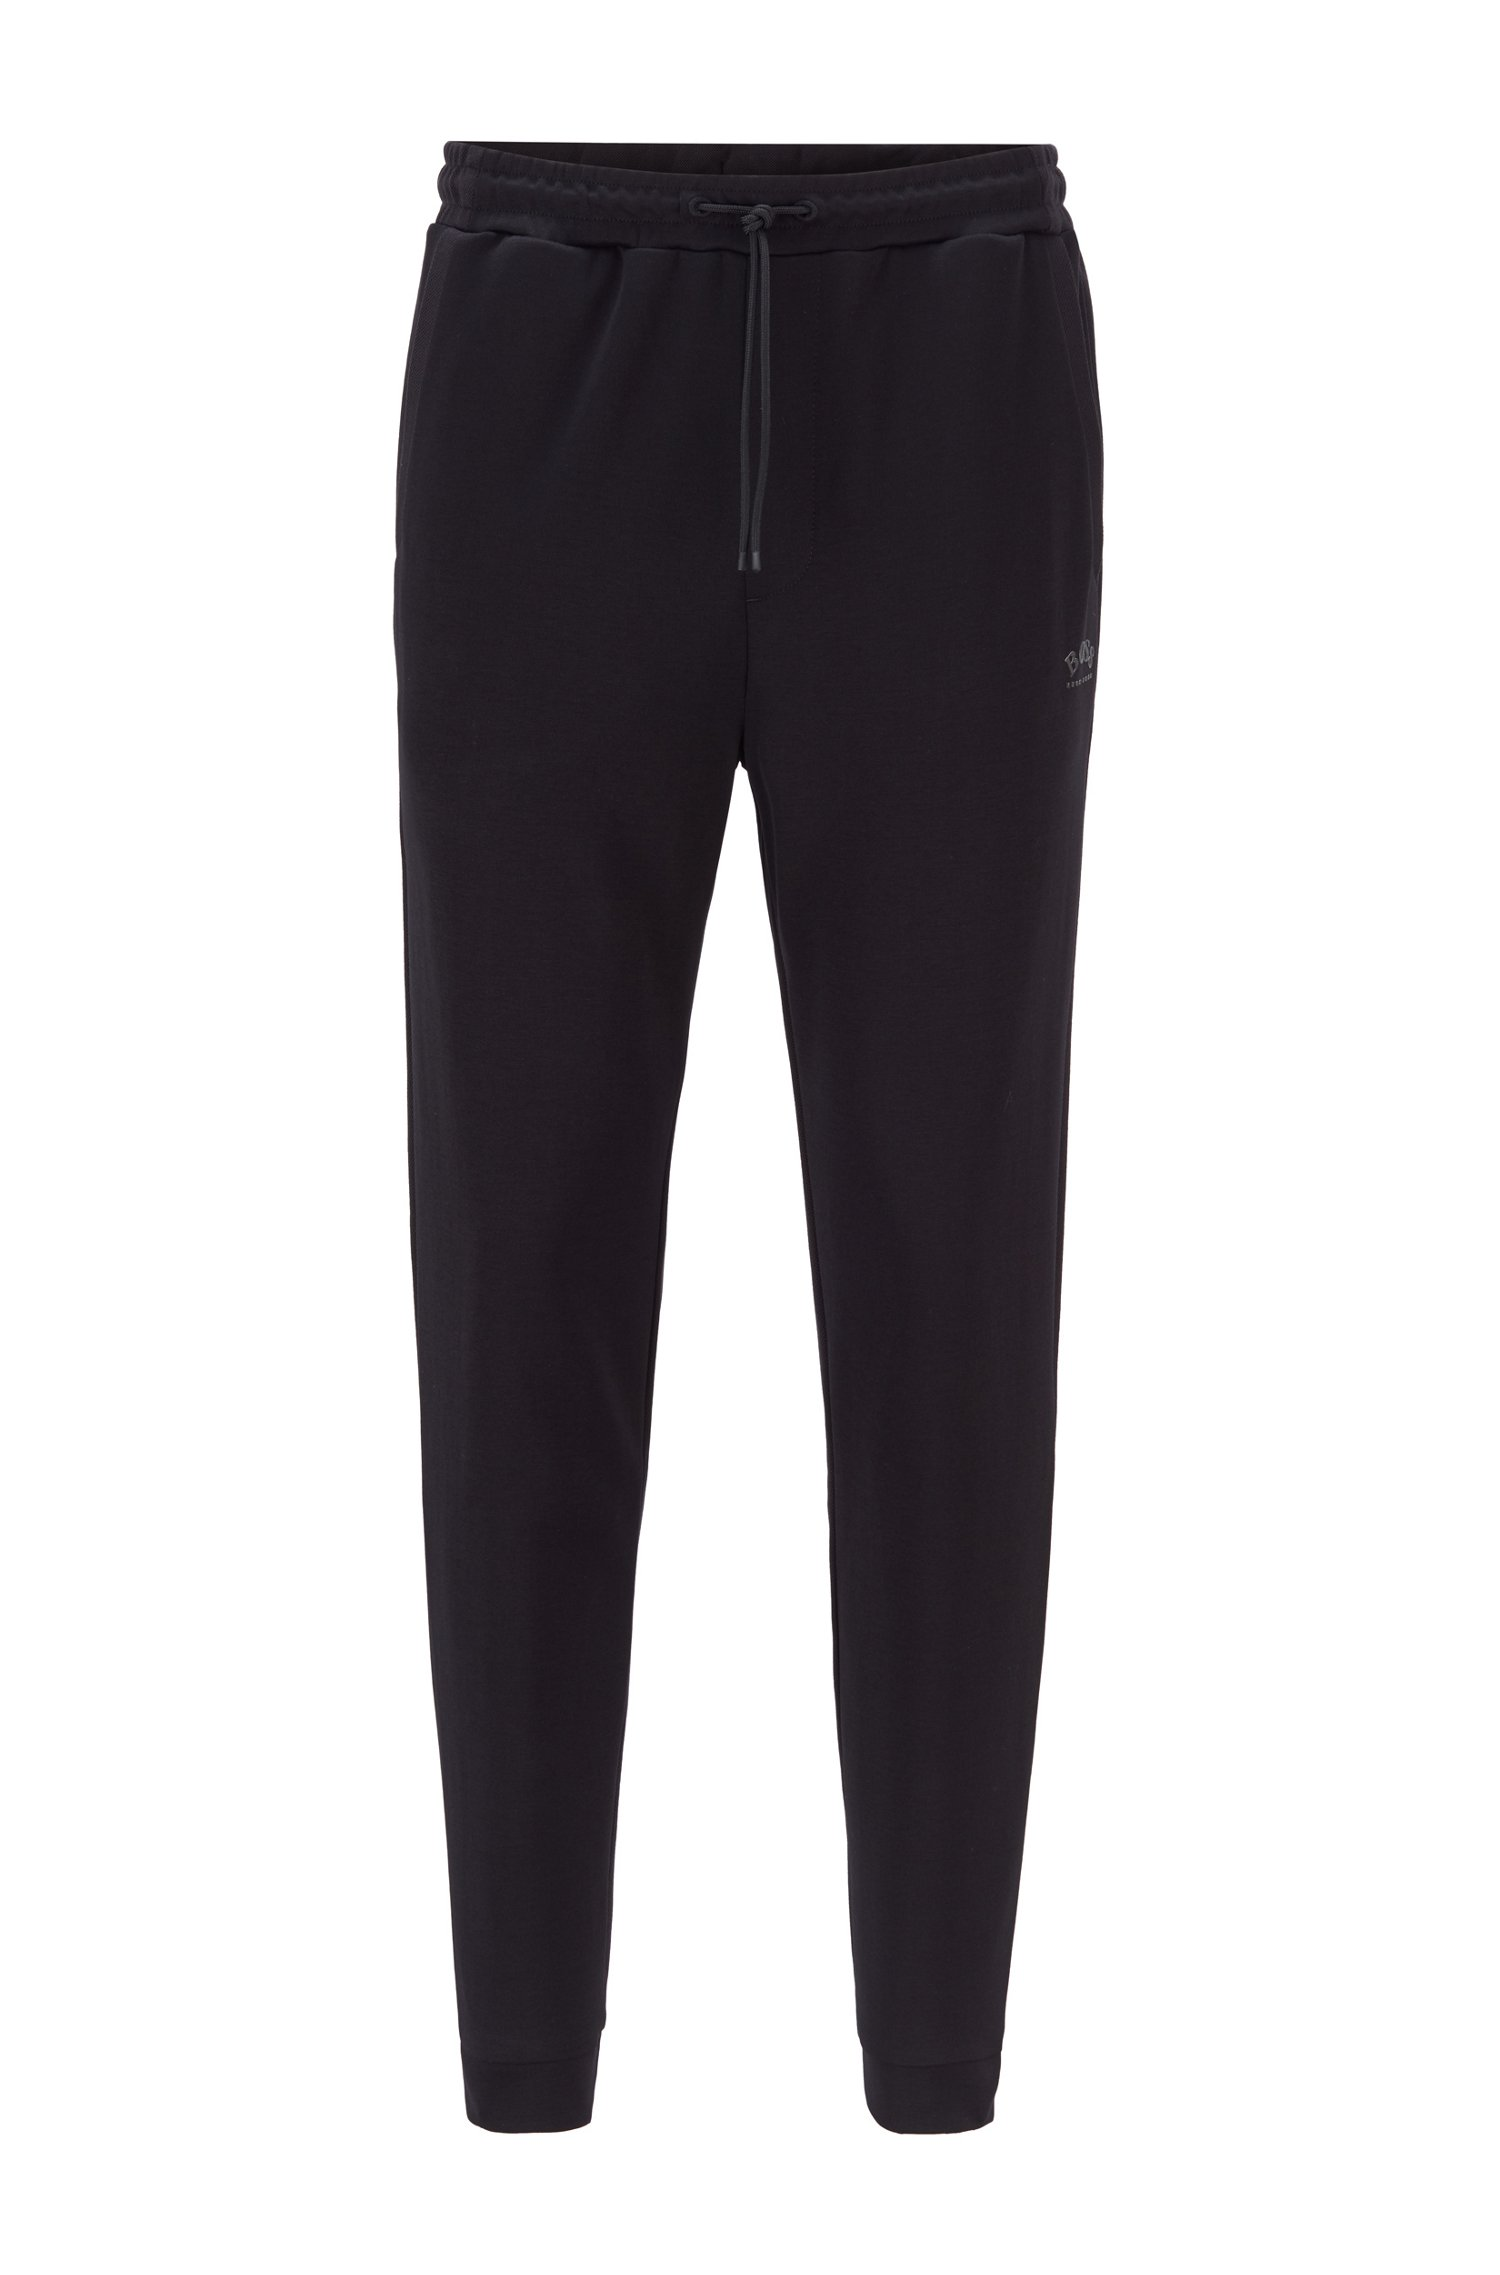 Double-faced cotton-blend tracksuit bottoms with curved logo, Black